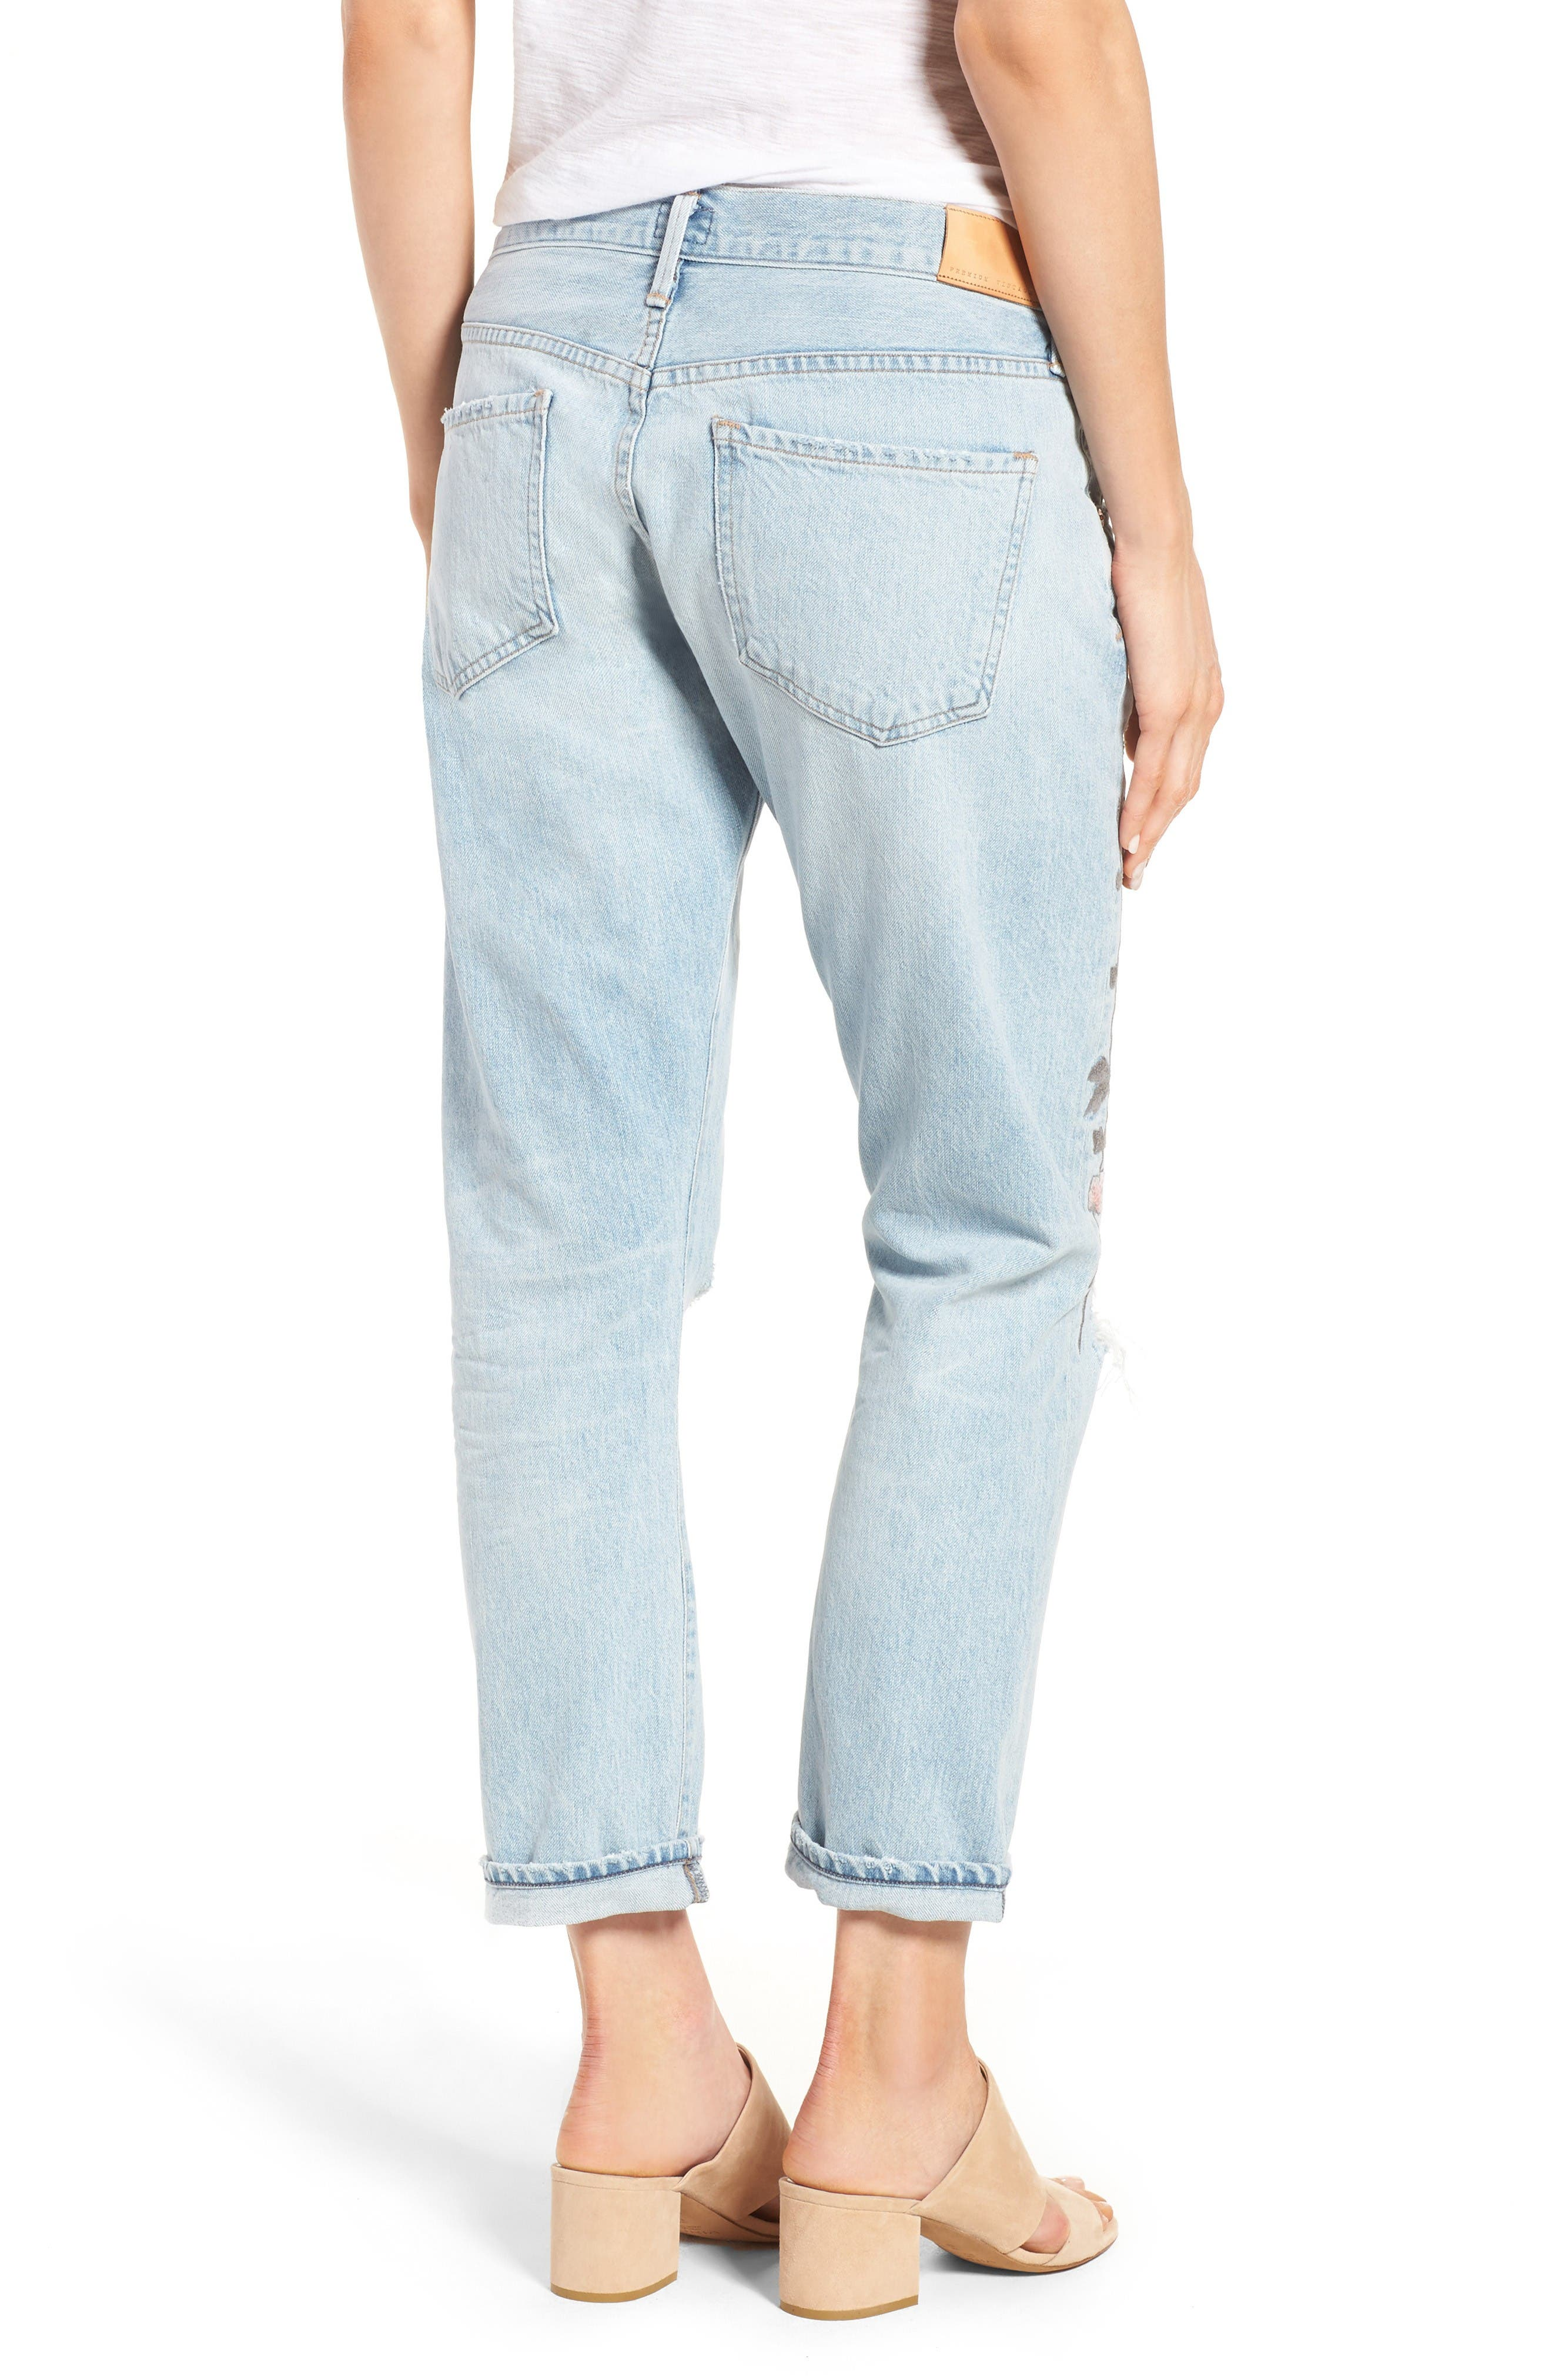 Alternate Image 3  - Citizens of Humanity Emerson Slim Boyfriend Jeans (Distressed Rock on Roses)